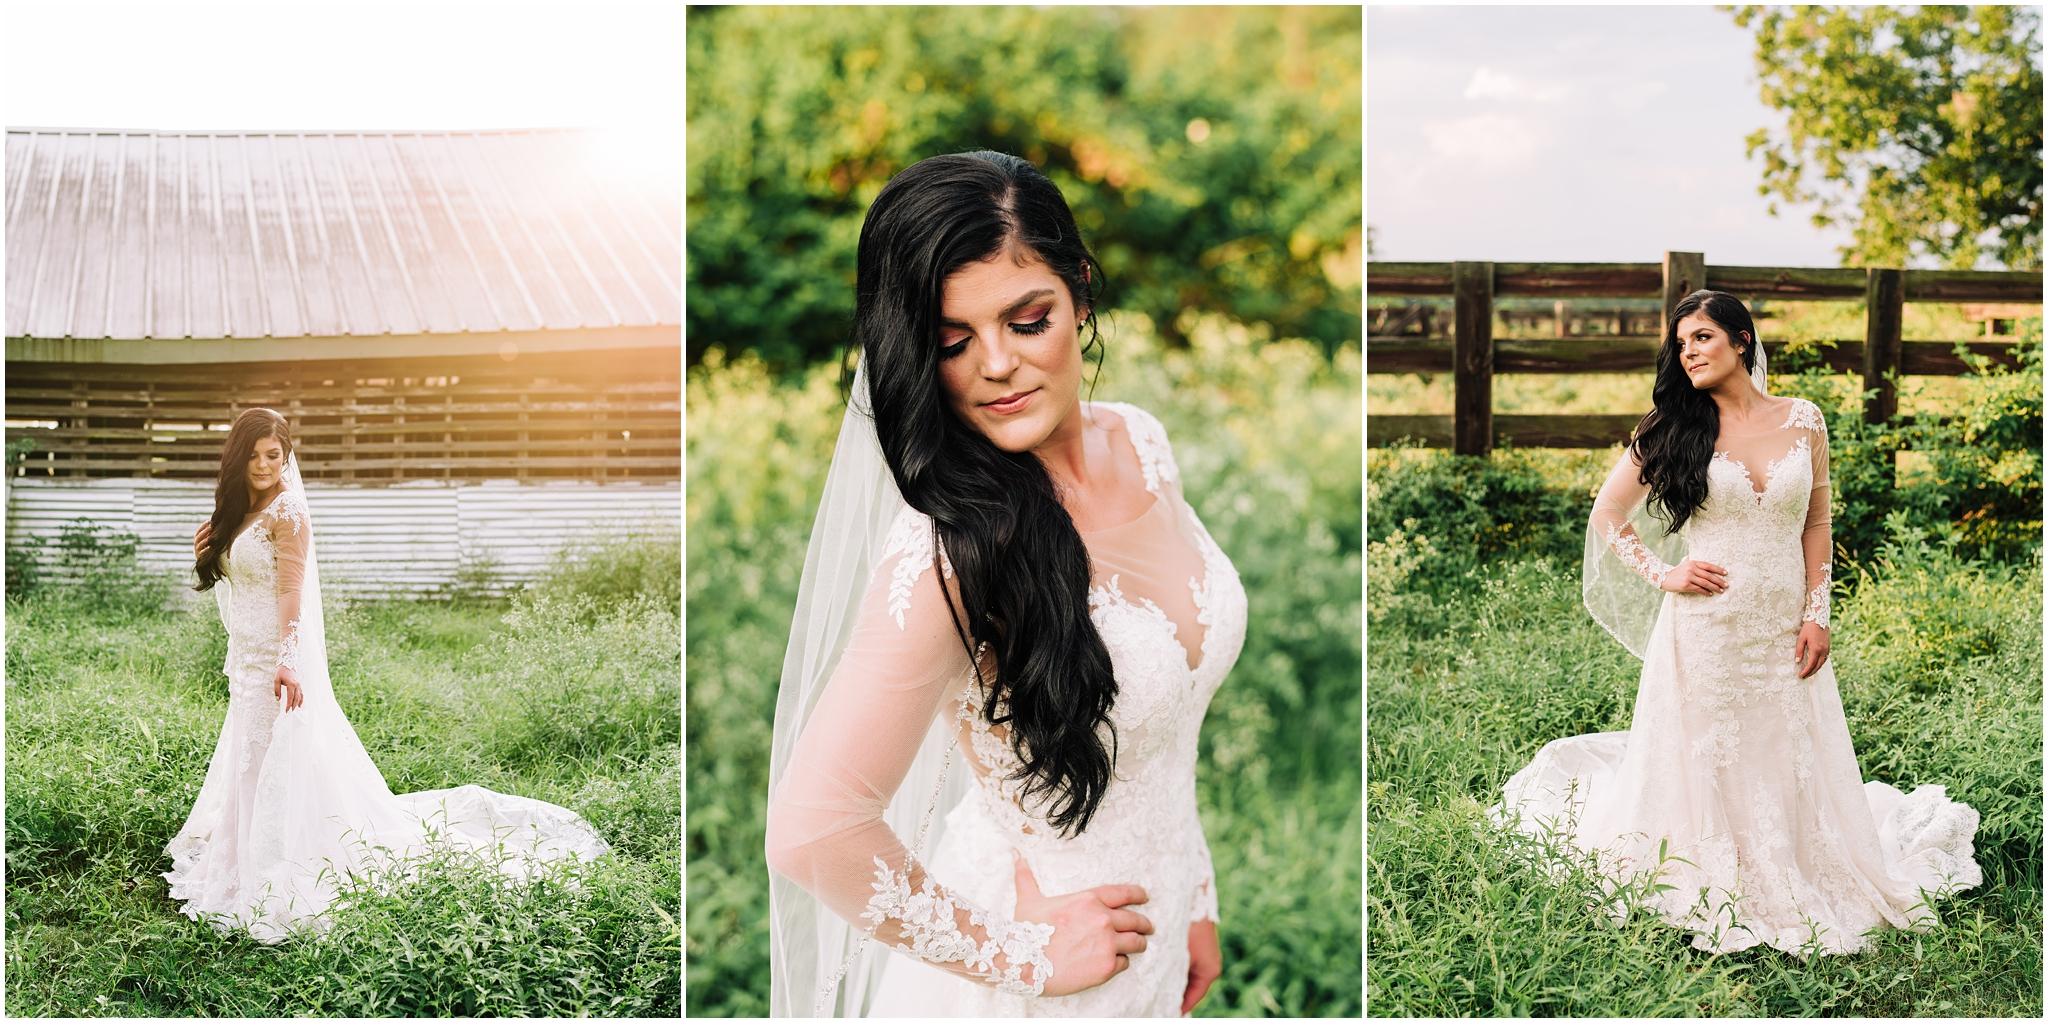 Bridal Portrait Session in Darrow, Louisiana on a farm. Country land with horse. Photographed by Magnolia and Grace Photography. A wedding and family portrait photographer located in Denham Springs. Baton Rouge, Lafayette, Gonzales, New Orleans, Mandeville, and Southern Louisiana Photographer.